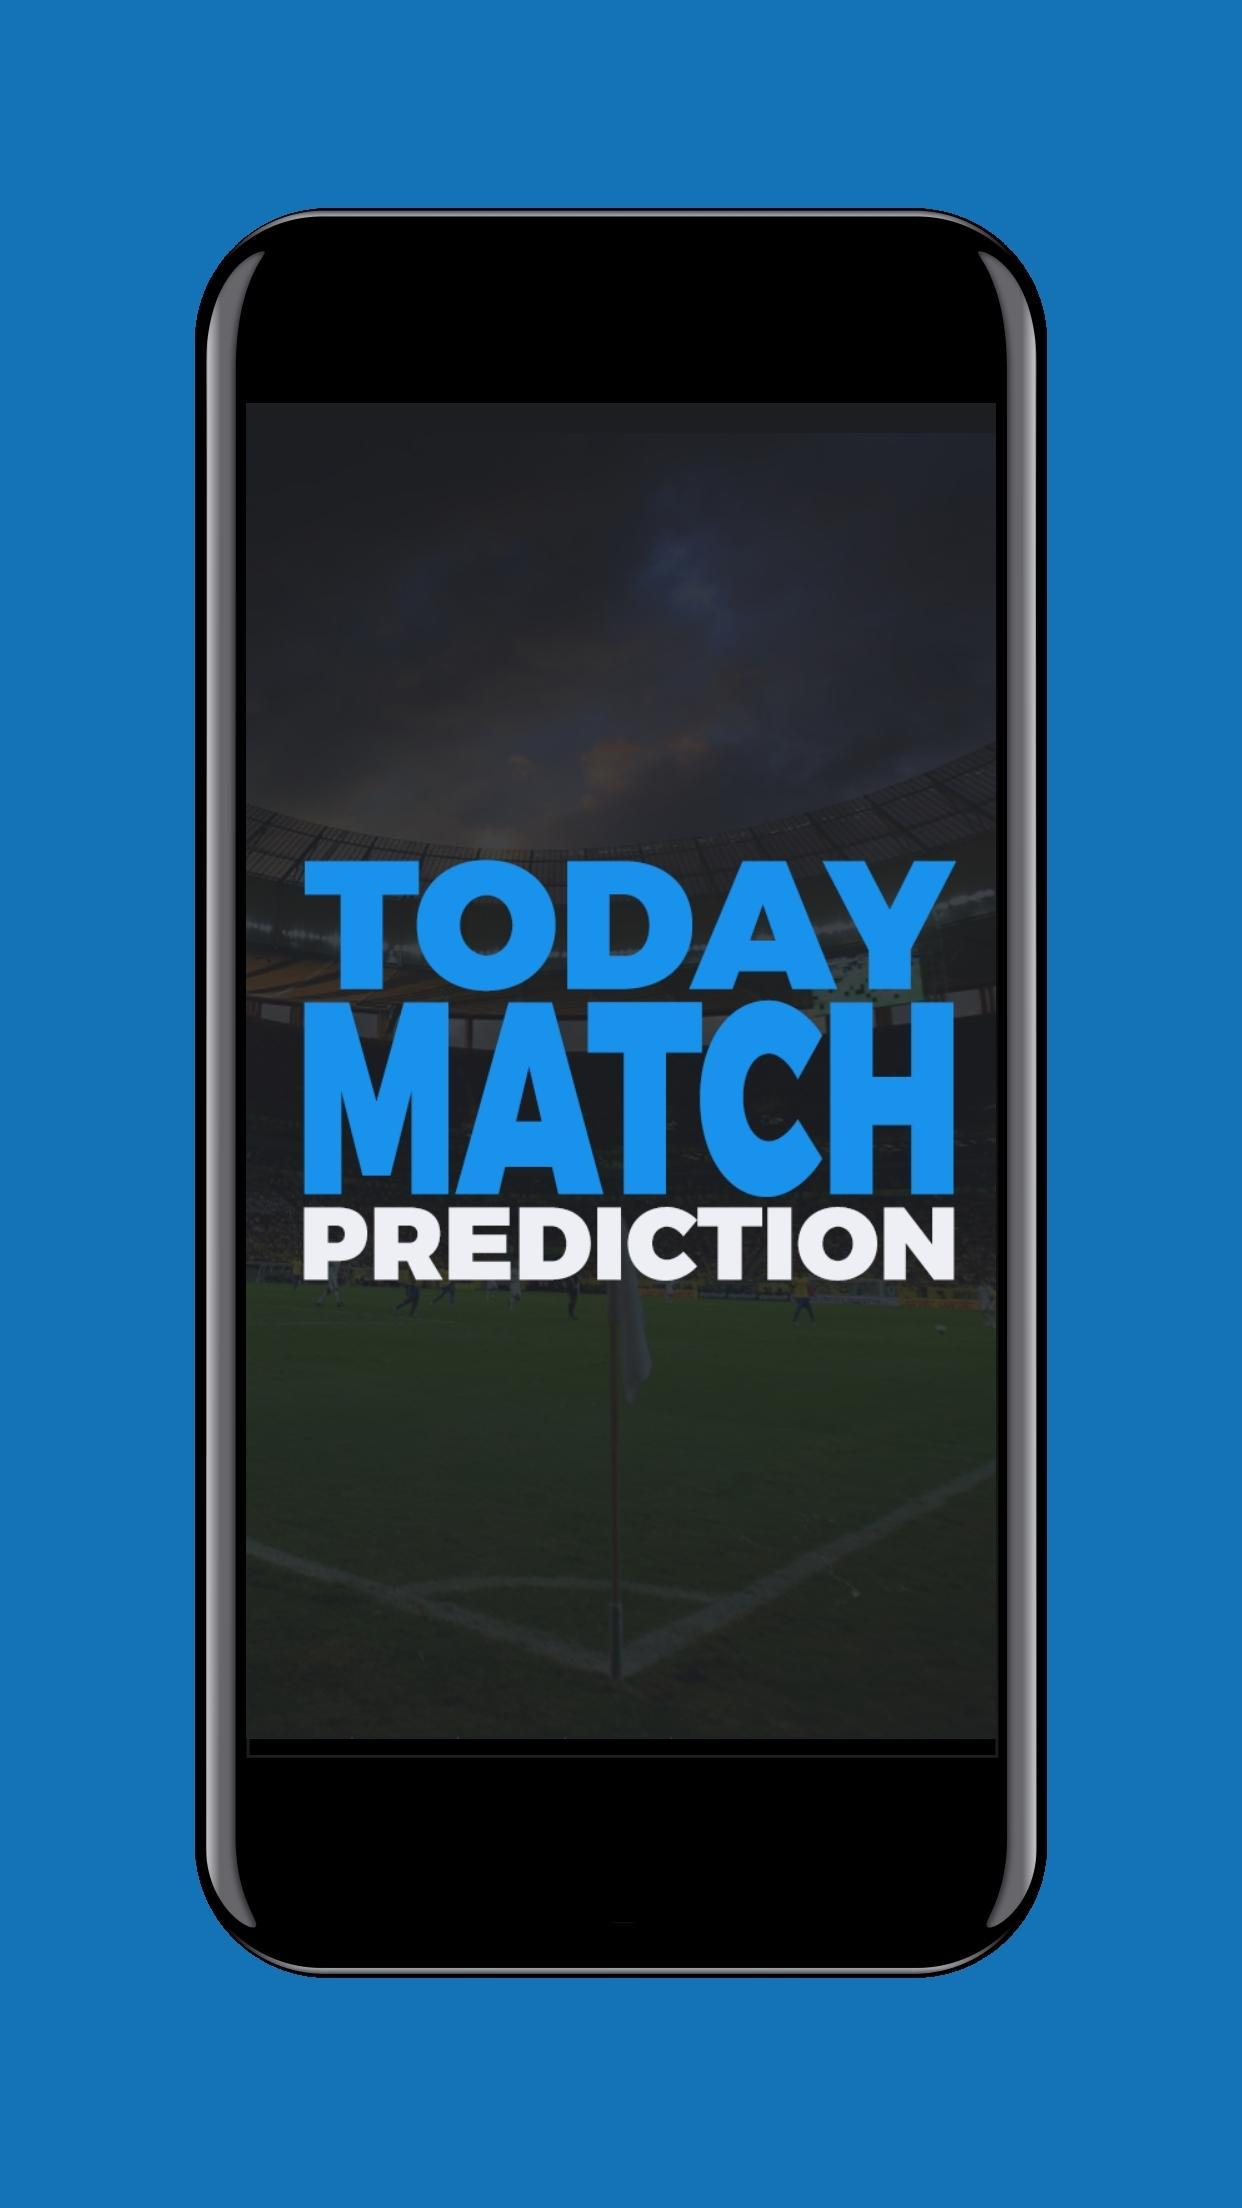 Today Match Prediction for Android - APK Download